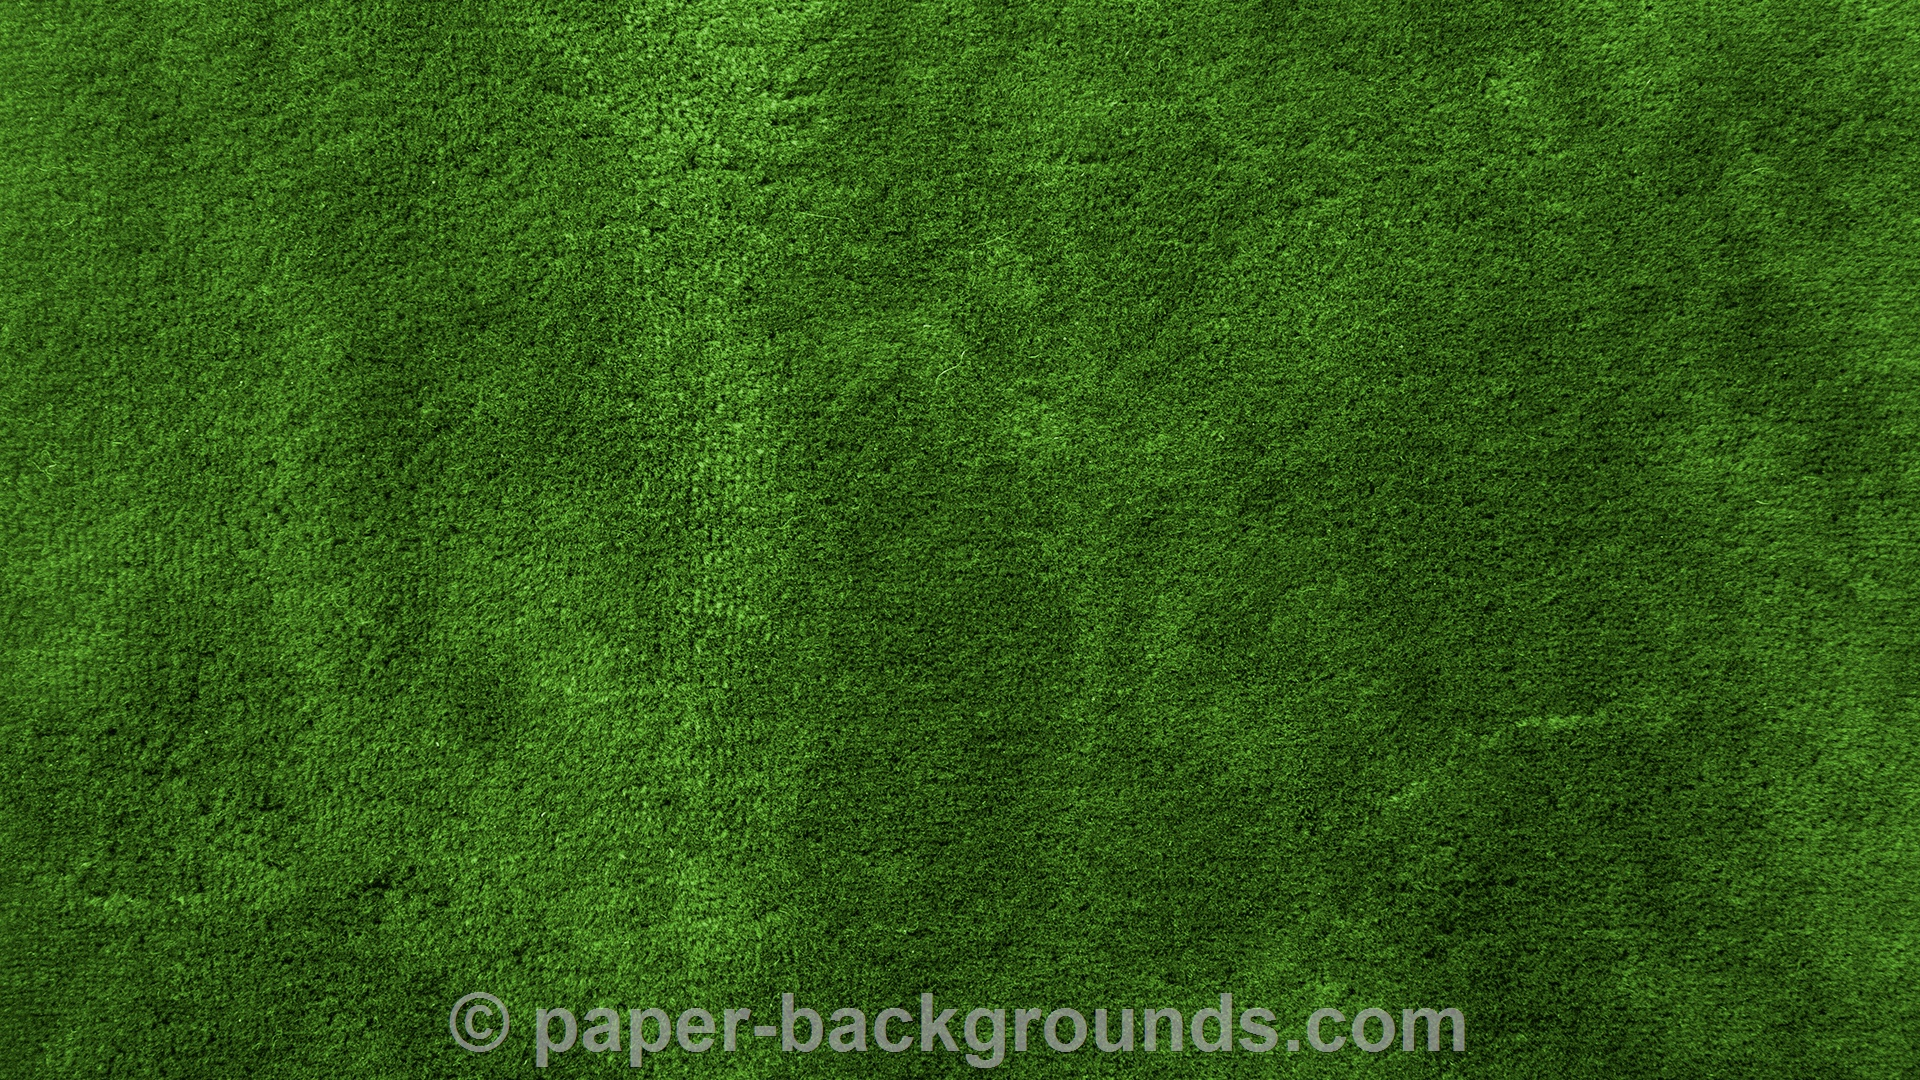 Paper Backgrounds up Royalty Free HD Paper Backgrounds : green velvet texture background hd from paper-backgrounds.com size 1920 x 1080 jpeg 1565kB